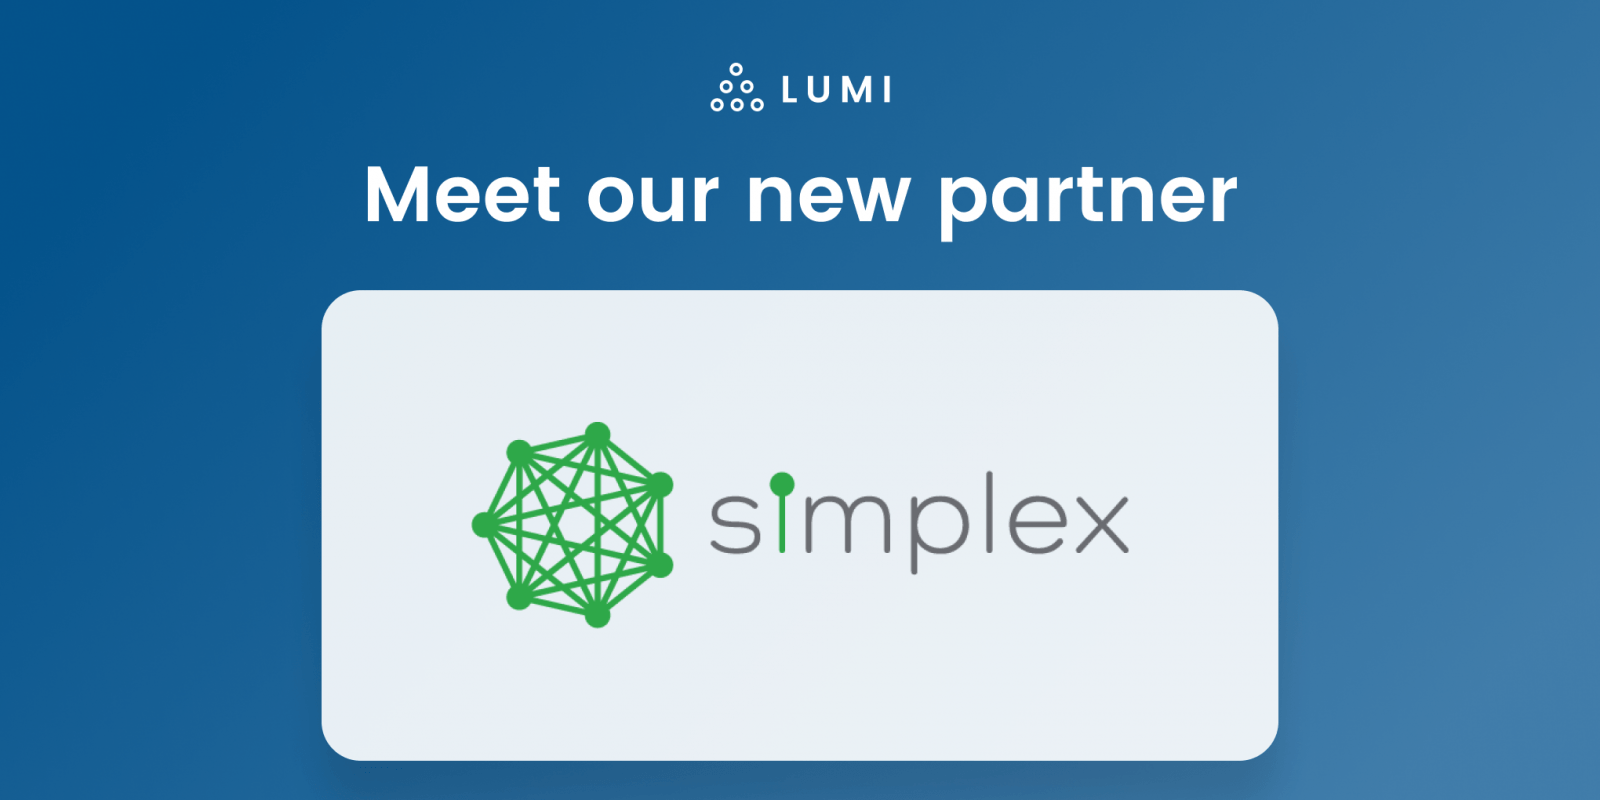 buy crypto with usd with simplex in lumi wallet